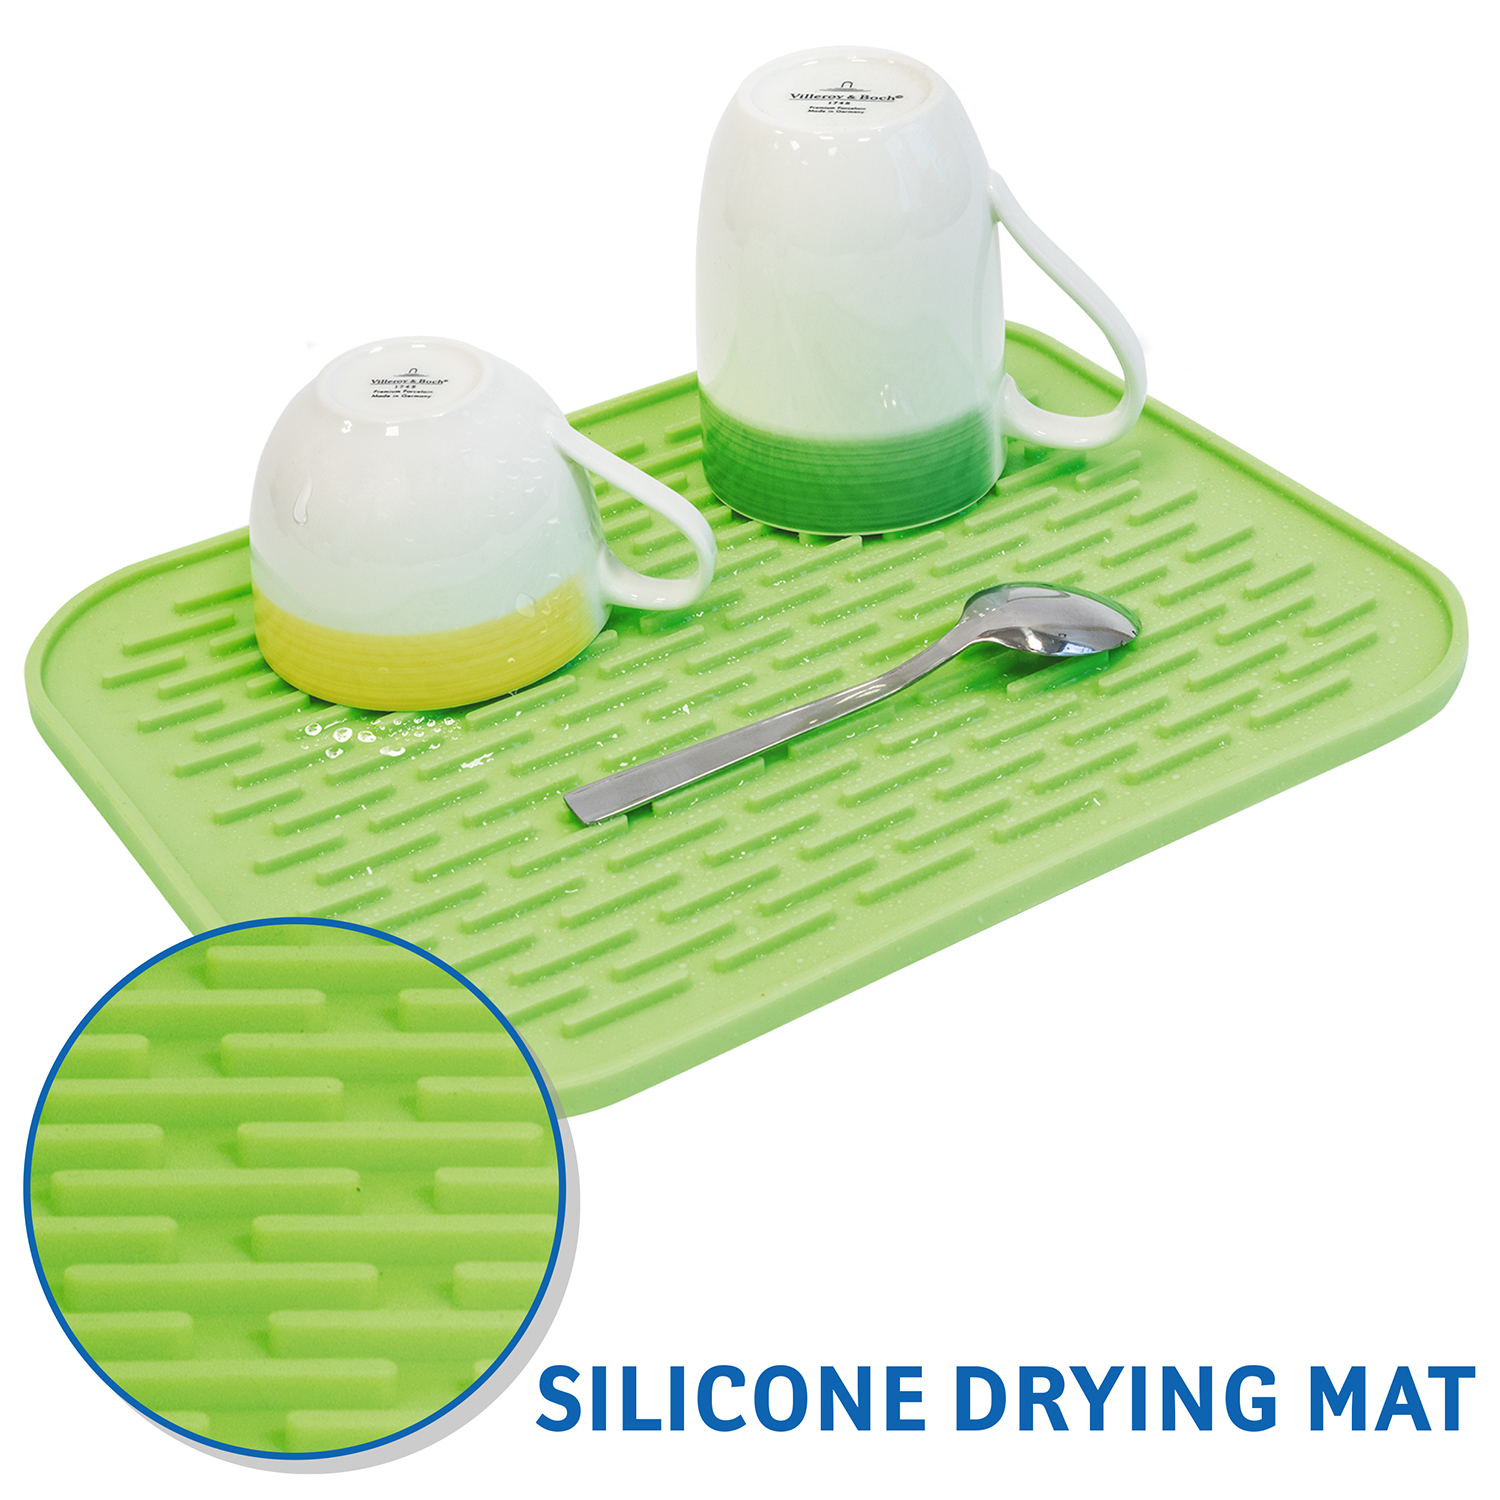 heat-insulation silicone trivet